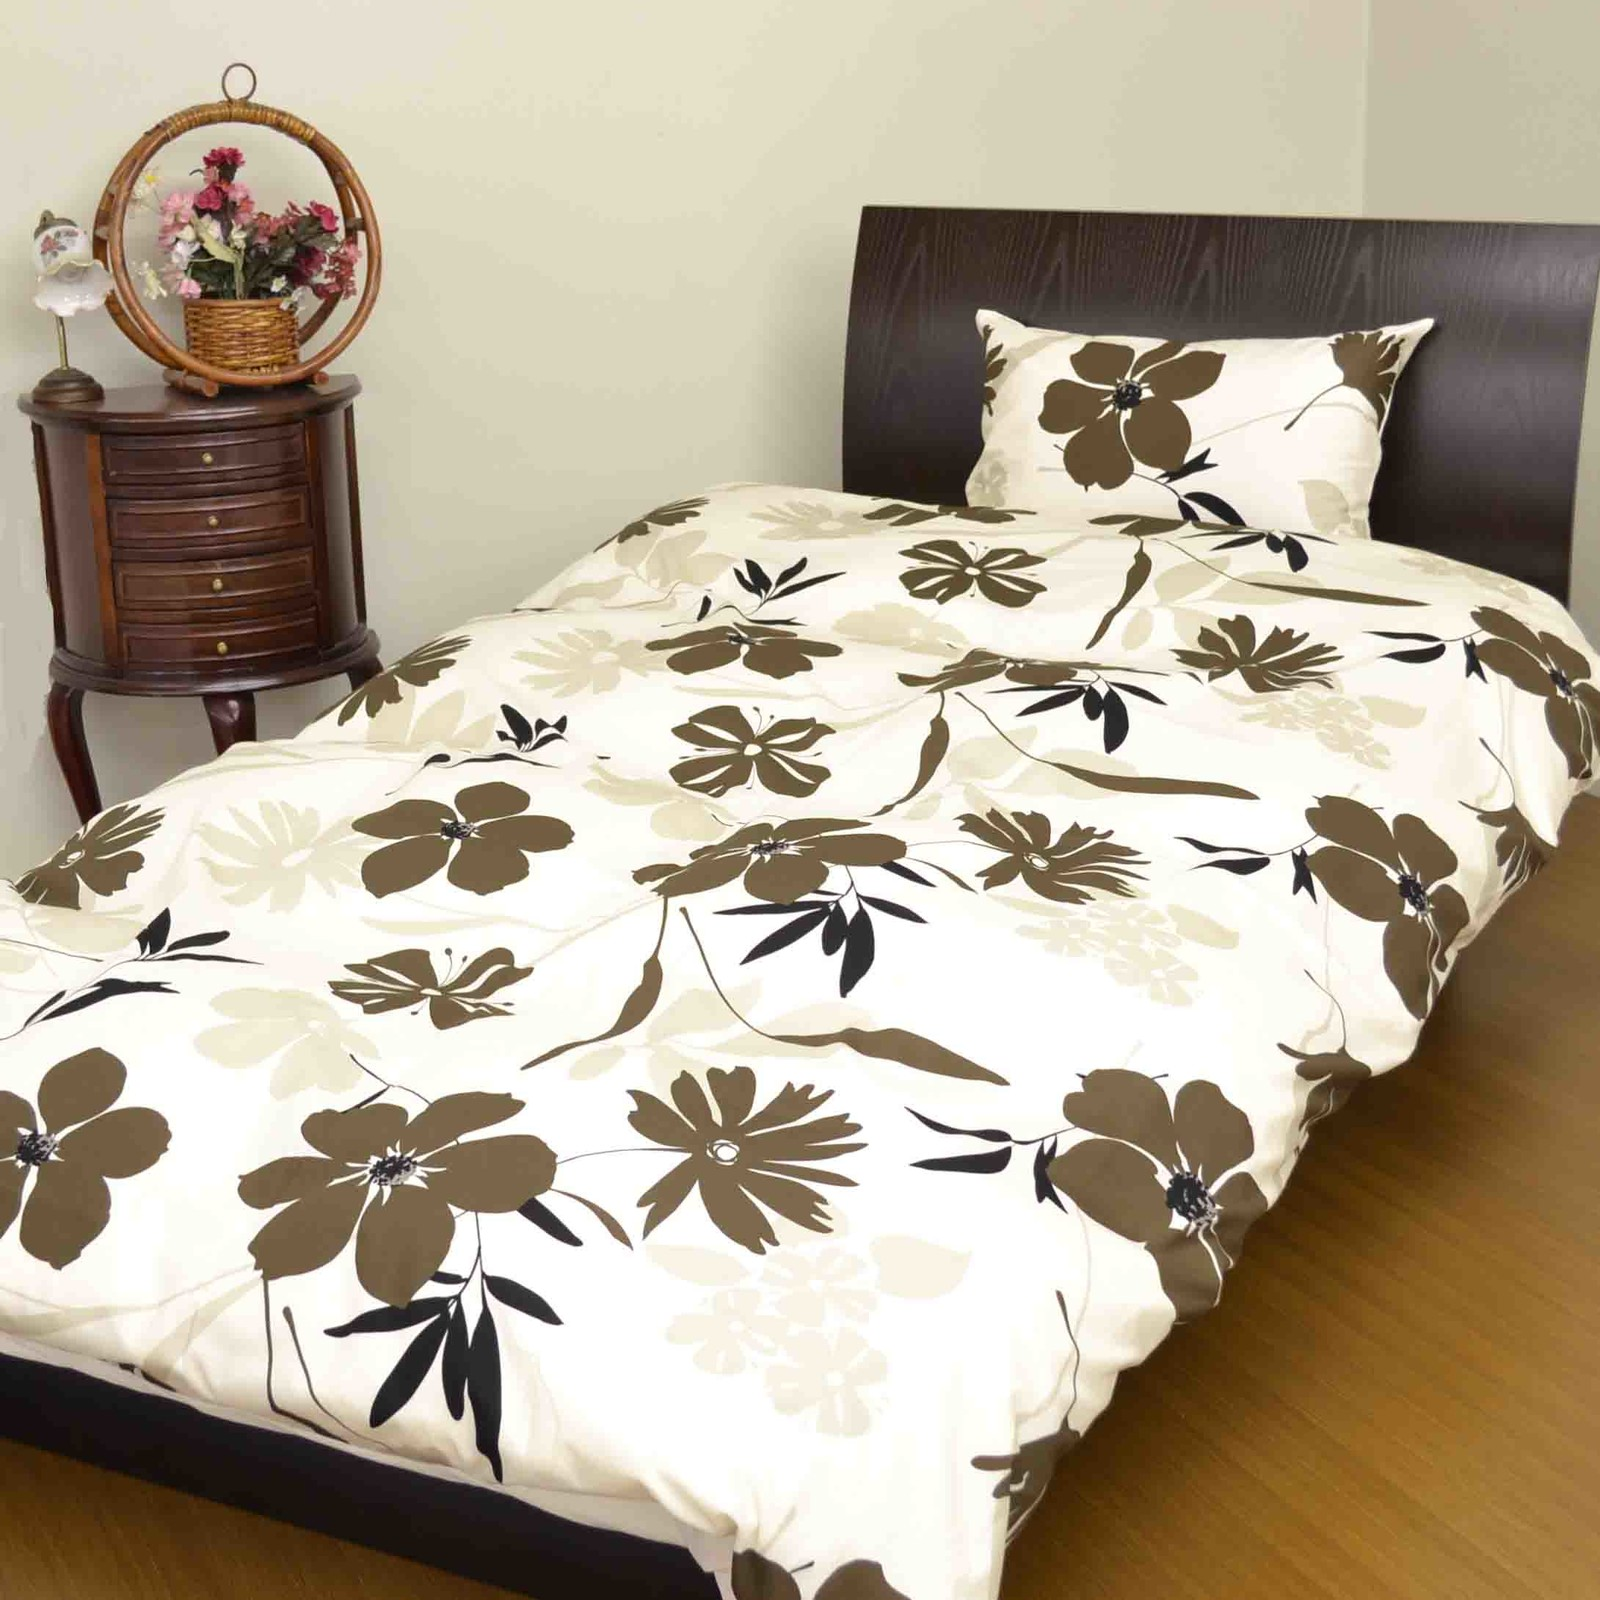 Modern Floral Pattern Bedspread Cover Mattress Cover Pillow Case Import Japanese Products At Wholesale Prices Super Delivery